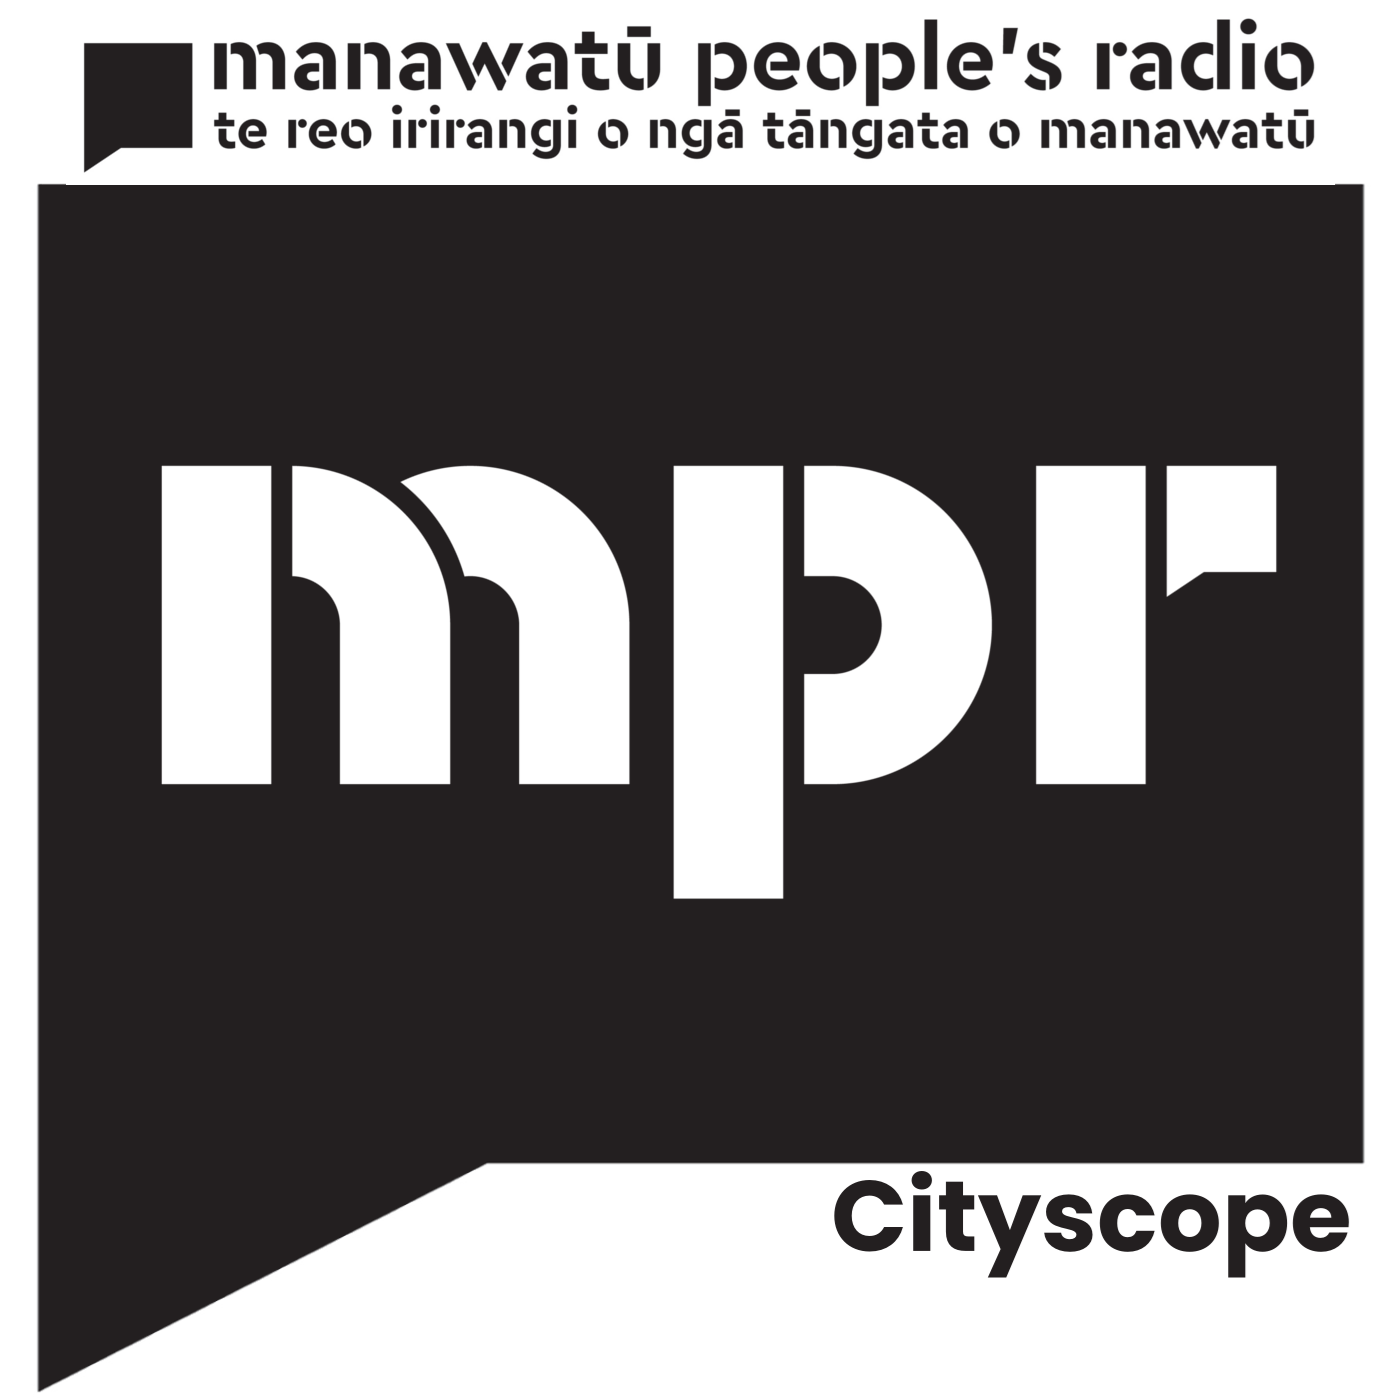 https://cdn.accessradio.org/StationFolder/manawatu/Images/MPRCityscope.png